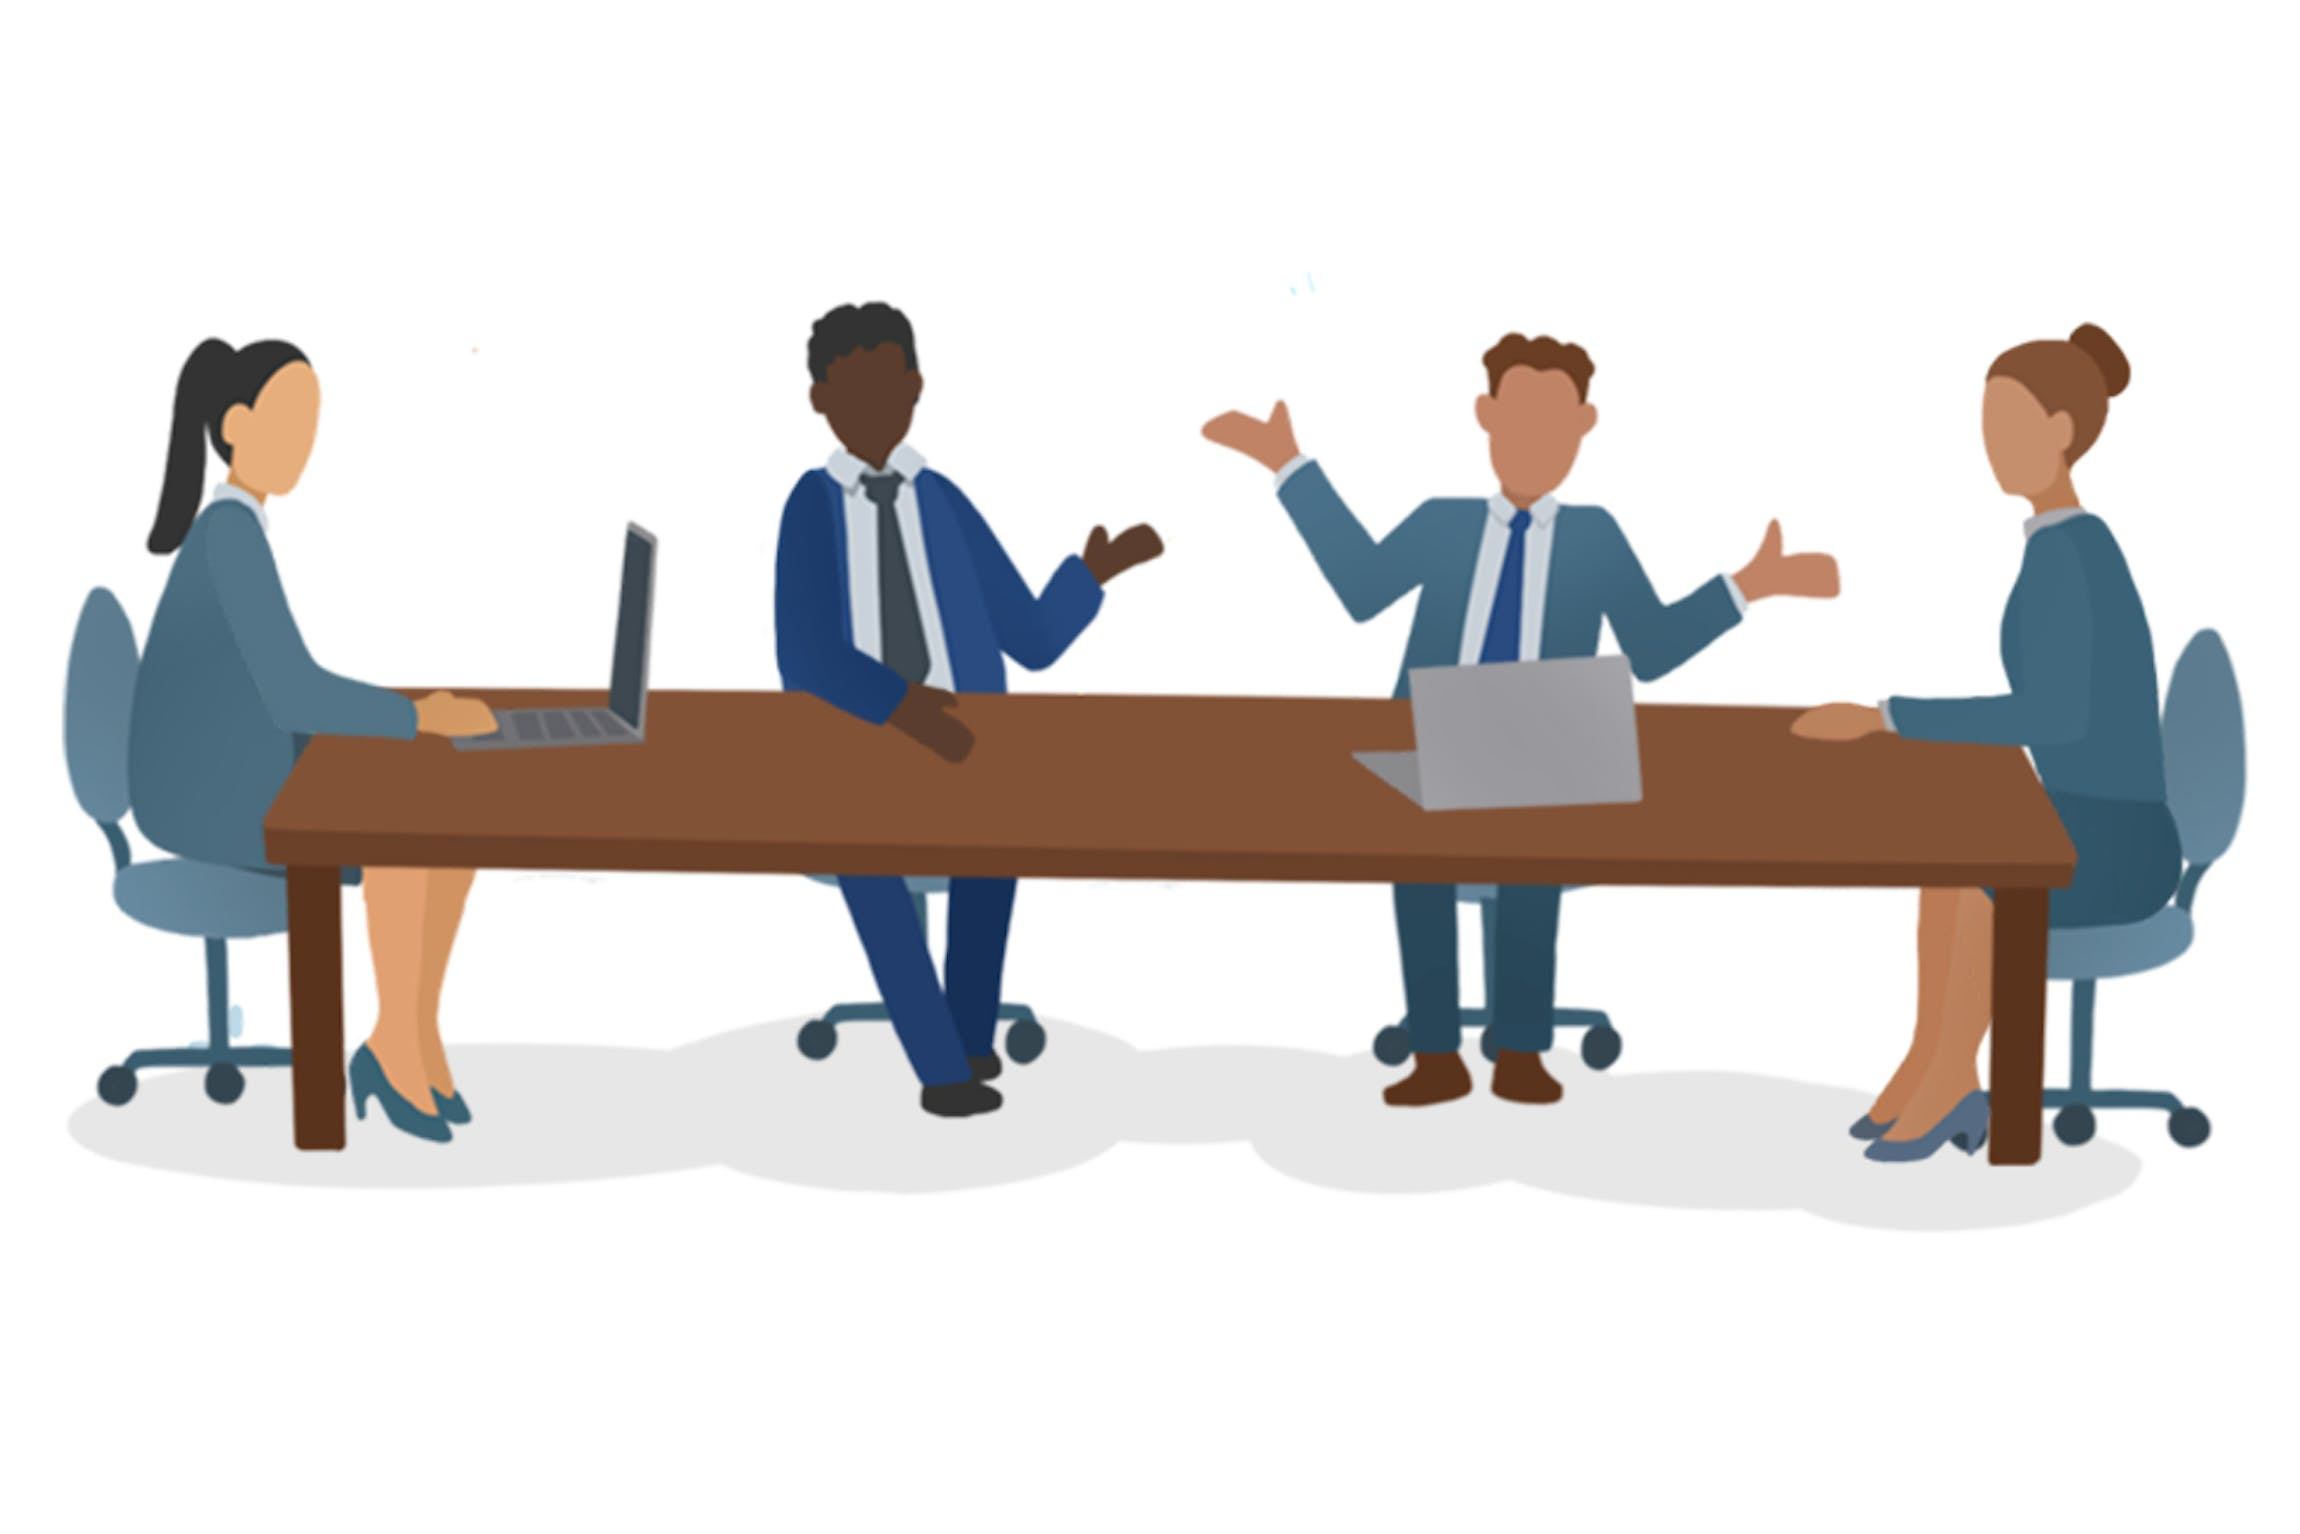 Cartoon illustration of professional people sitting at a boardroom table.